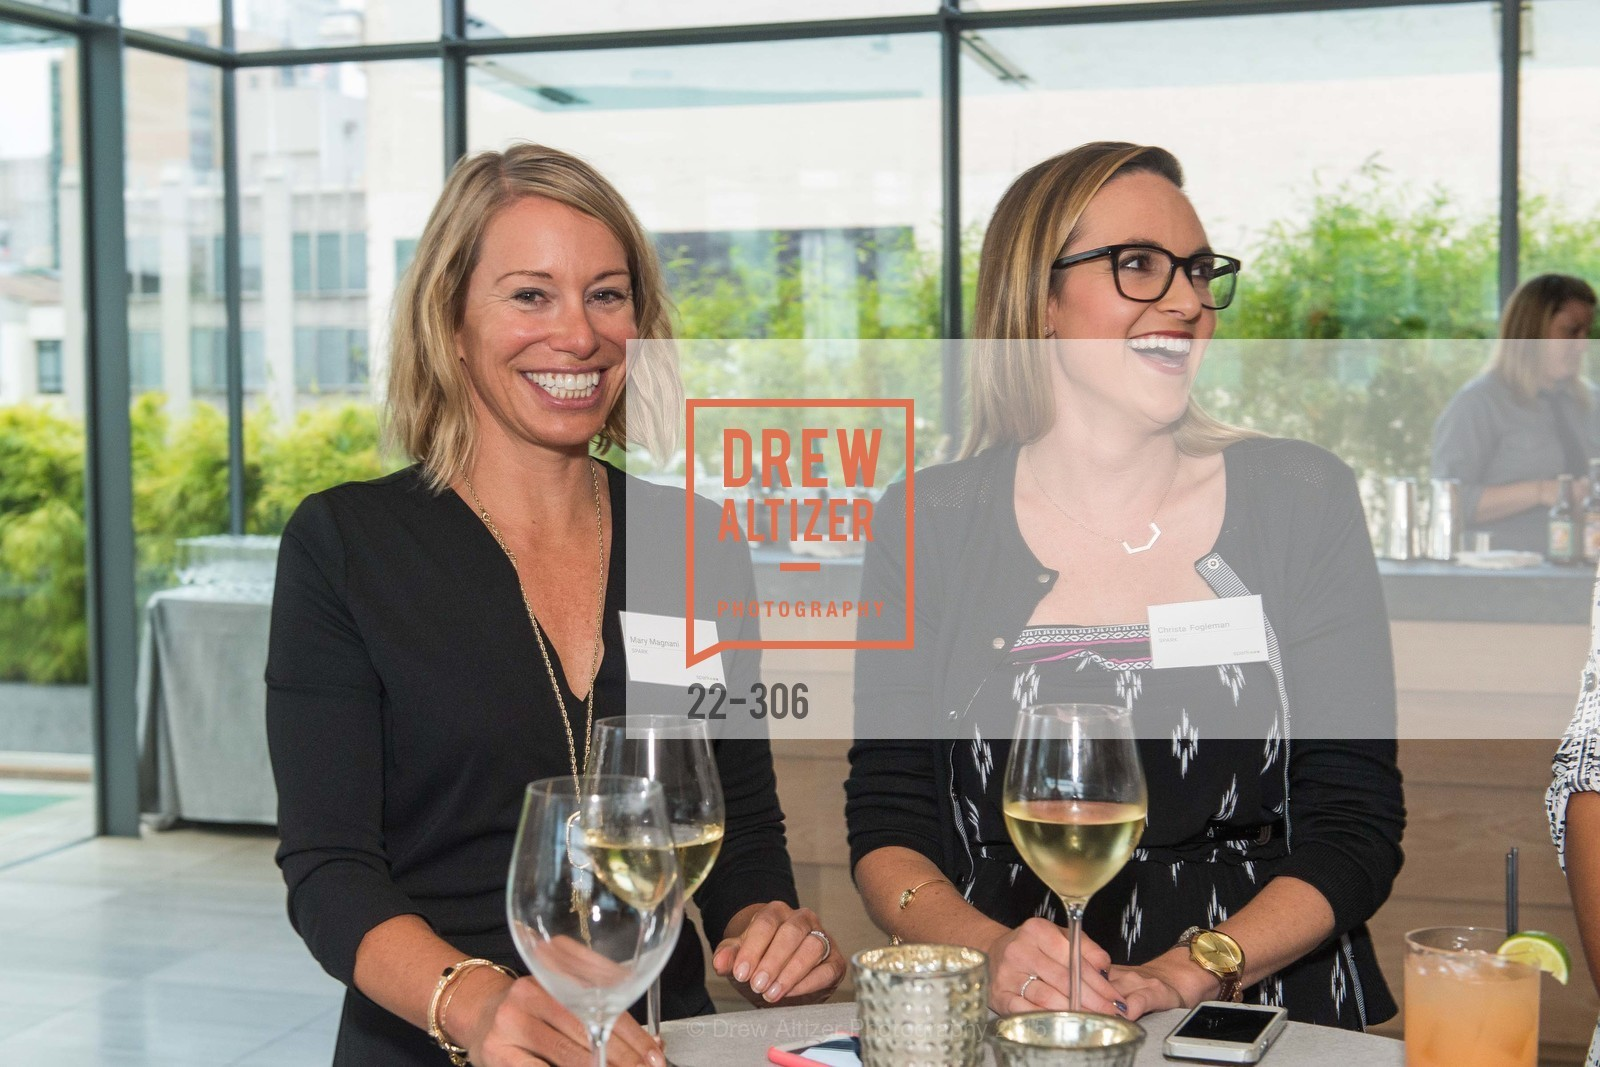 Mary Magnani, Christa Fogleman, Sparkpr's Annual Rooftop Soirée, The Battery Penthouse, September 22nd, 2015,Drew Altizer, Drew Altizer Photography, full-service event agency, private events, San Francisco photographer, photographer California